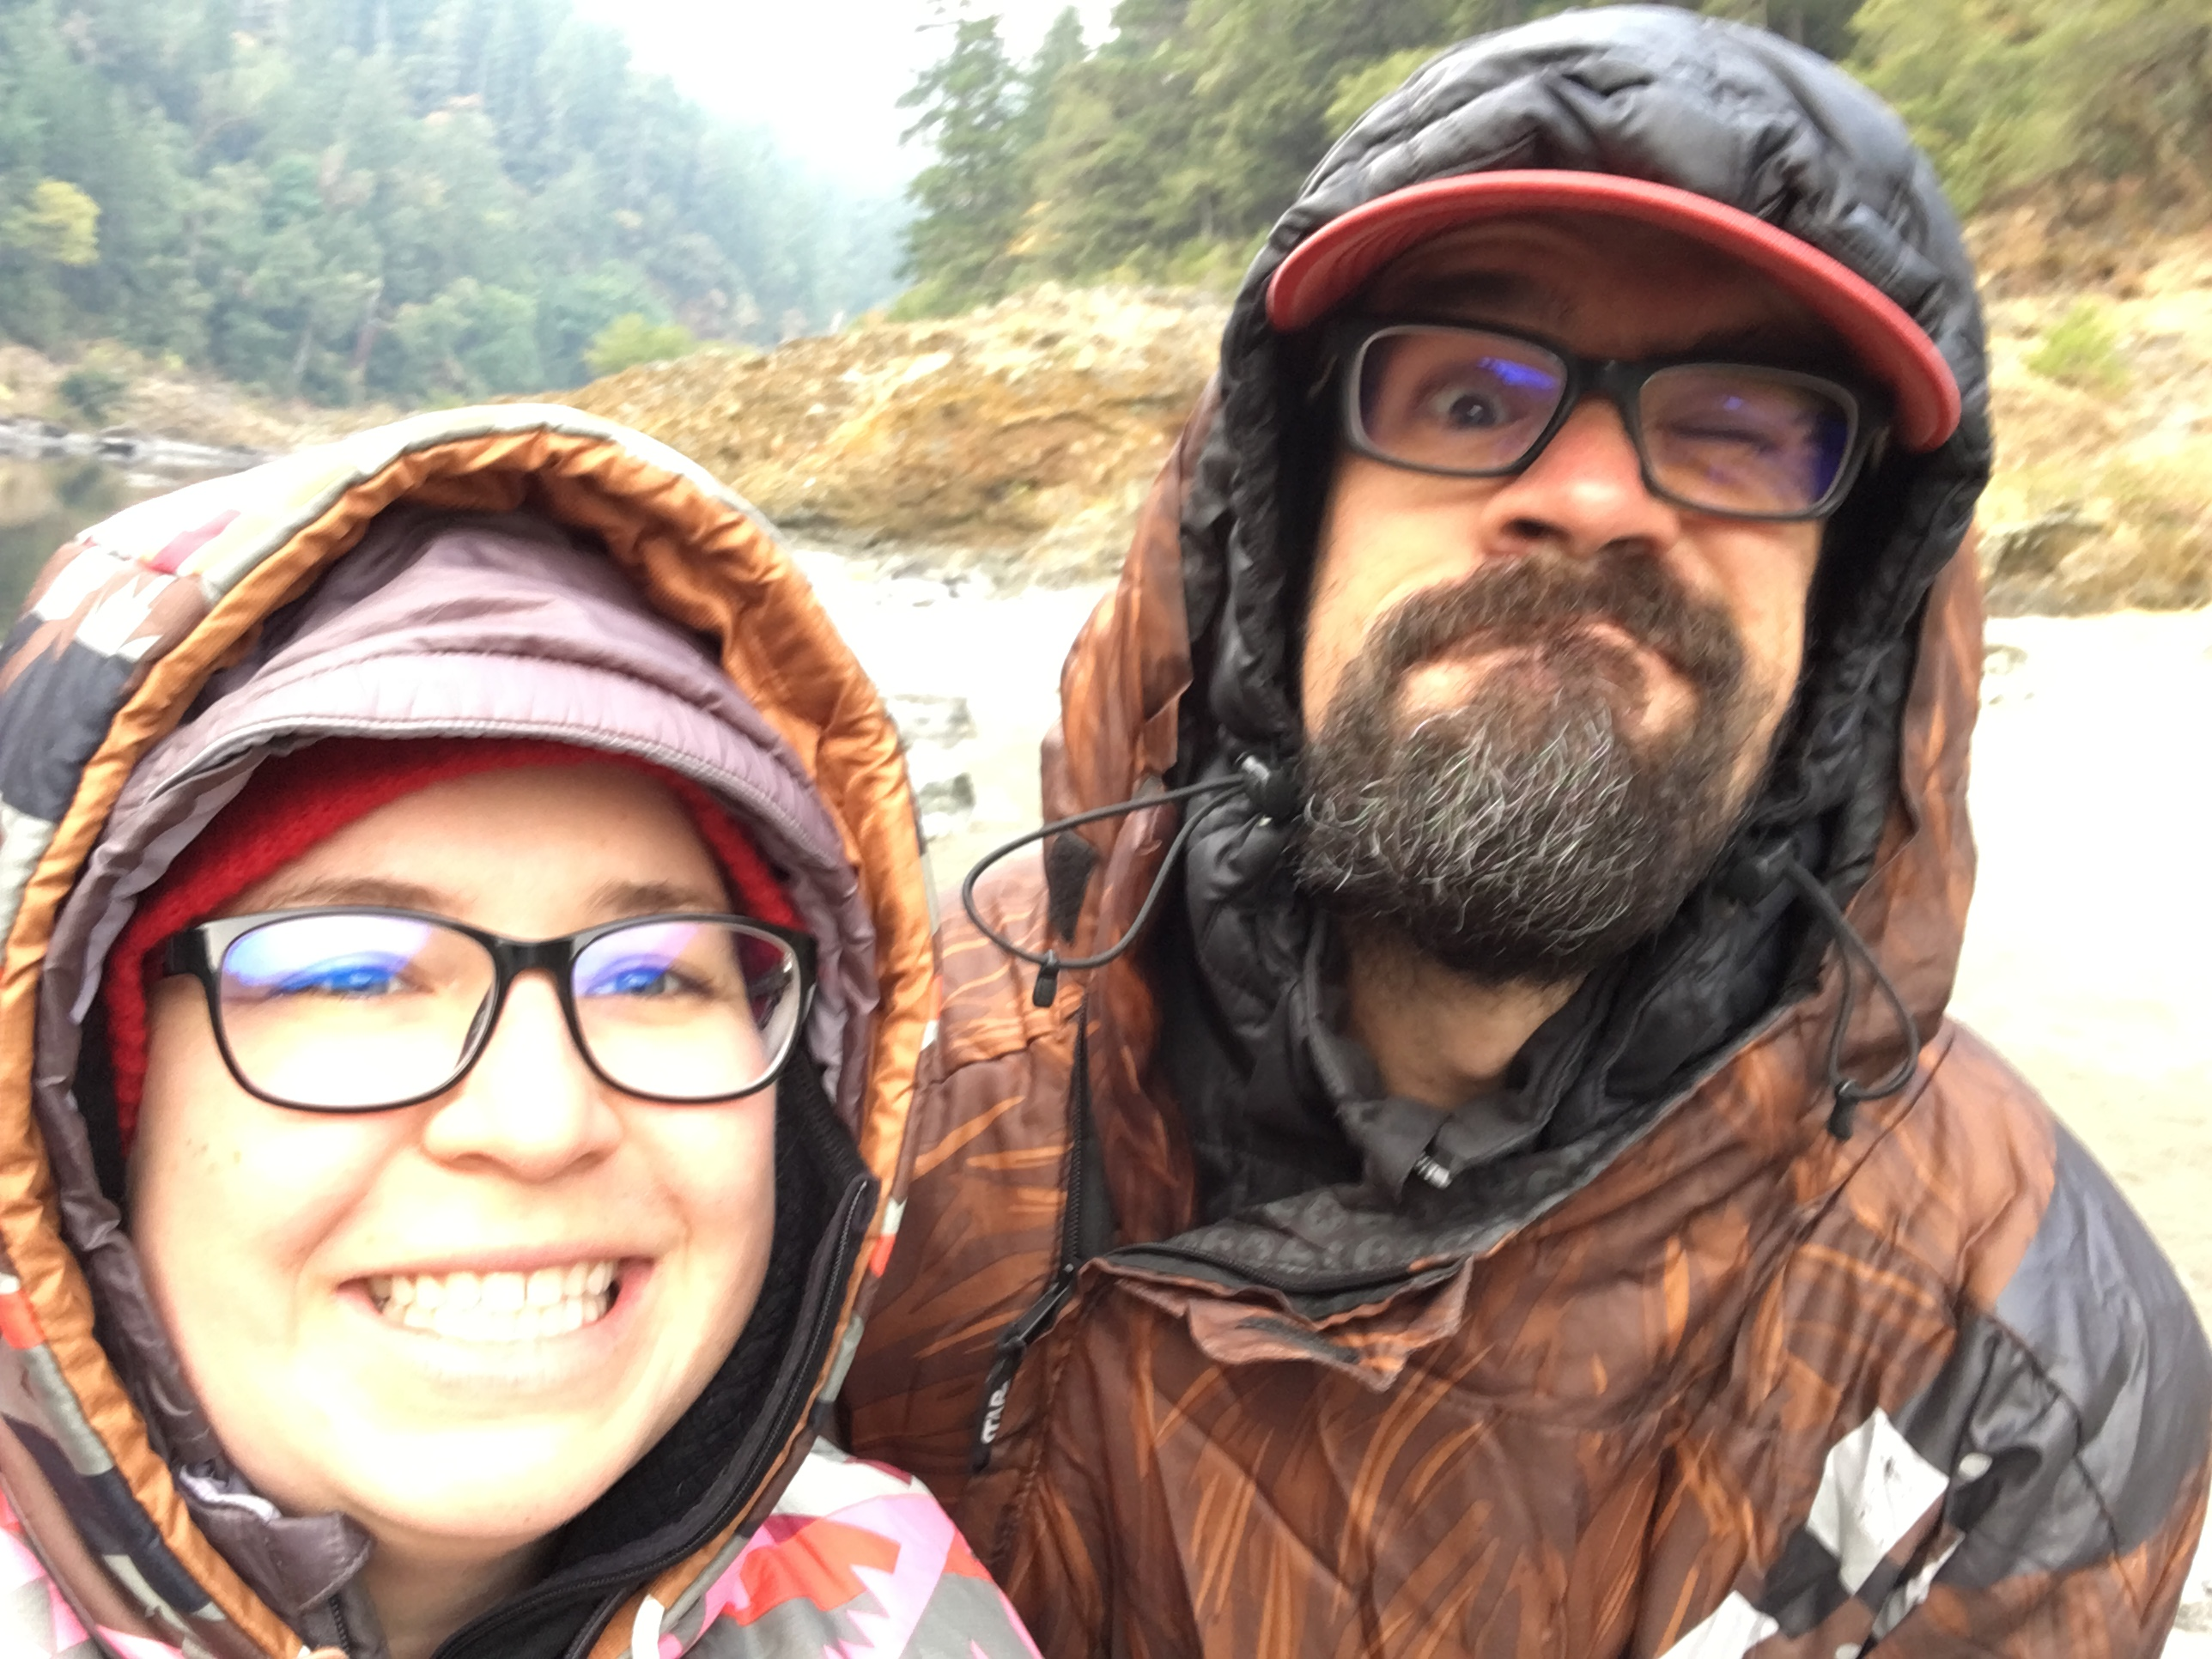 Ashely Drake and her husband smile while taking a selfie photo wearing rain gear